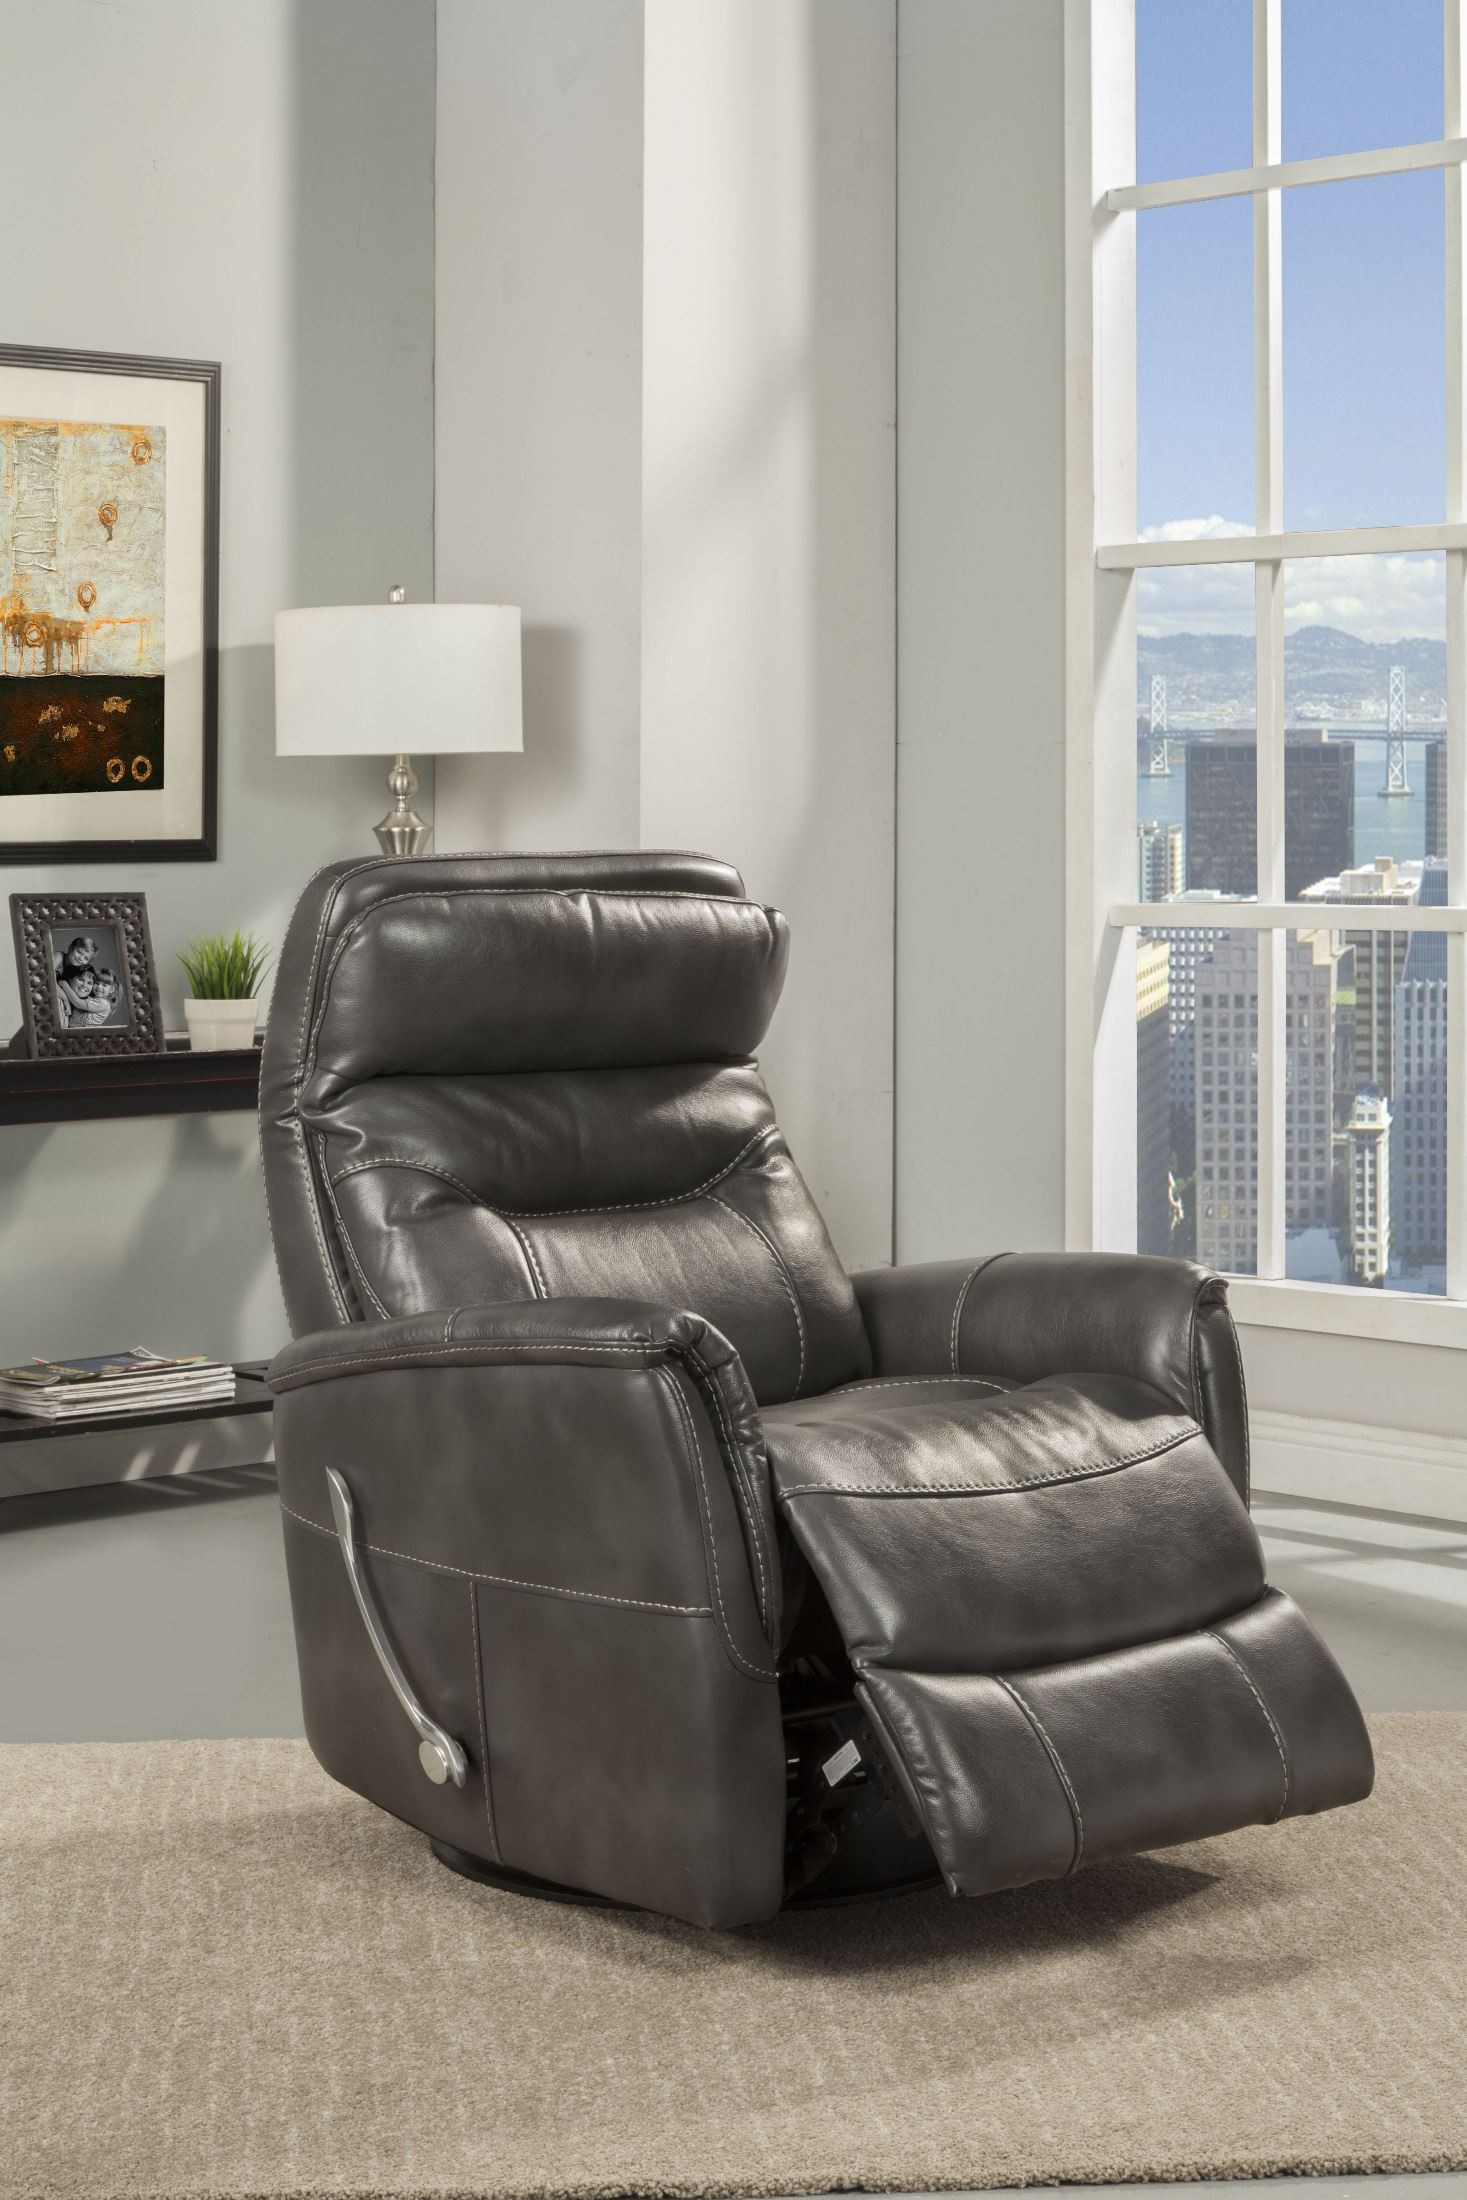 Gemini Flint Swivel Glider Recliner From Parker Living | Coleman For Hercules Oyster Swivel Glider Recliners (Image 3 of 20)